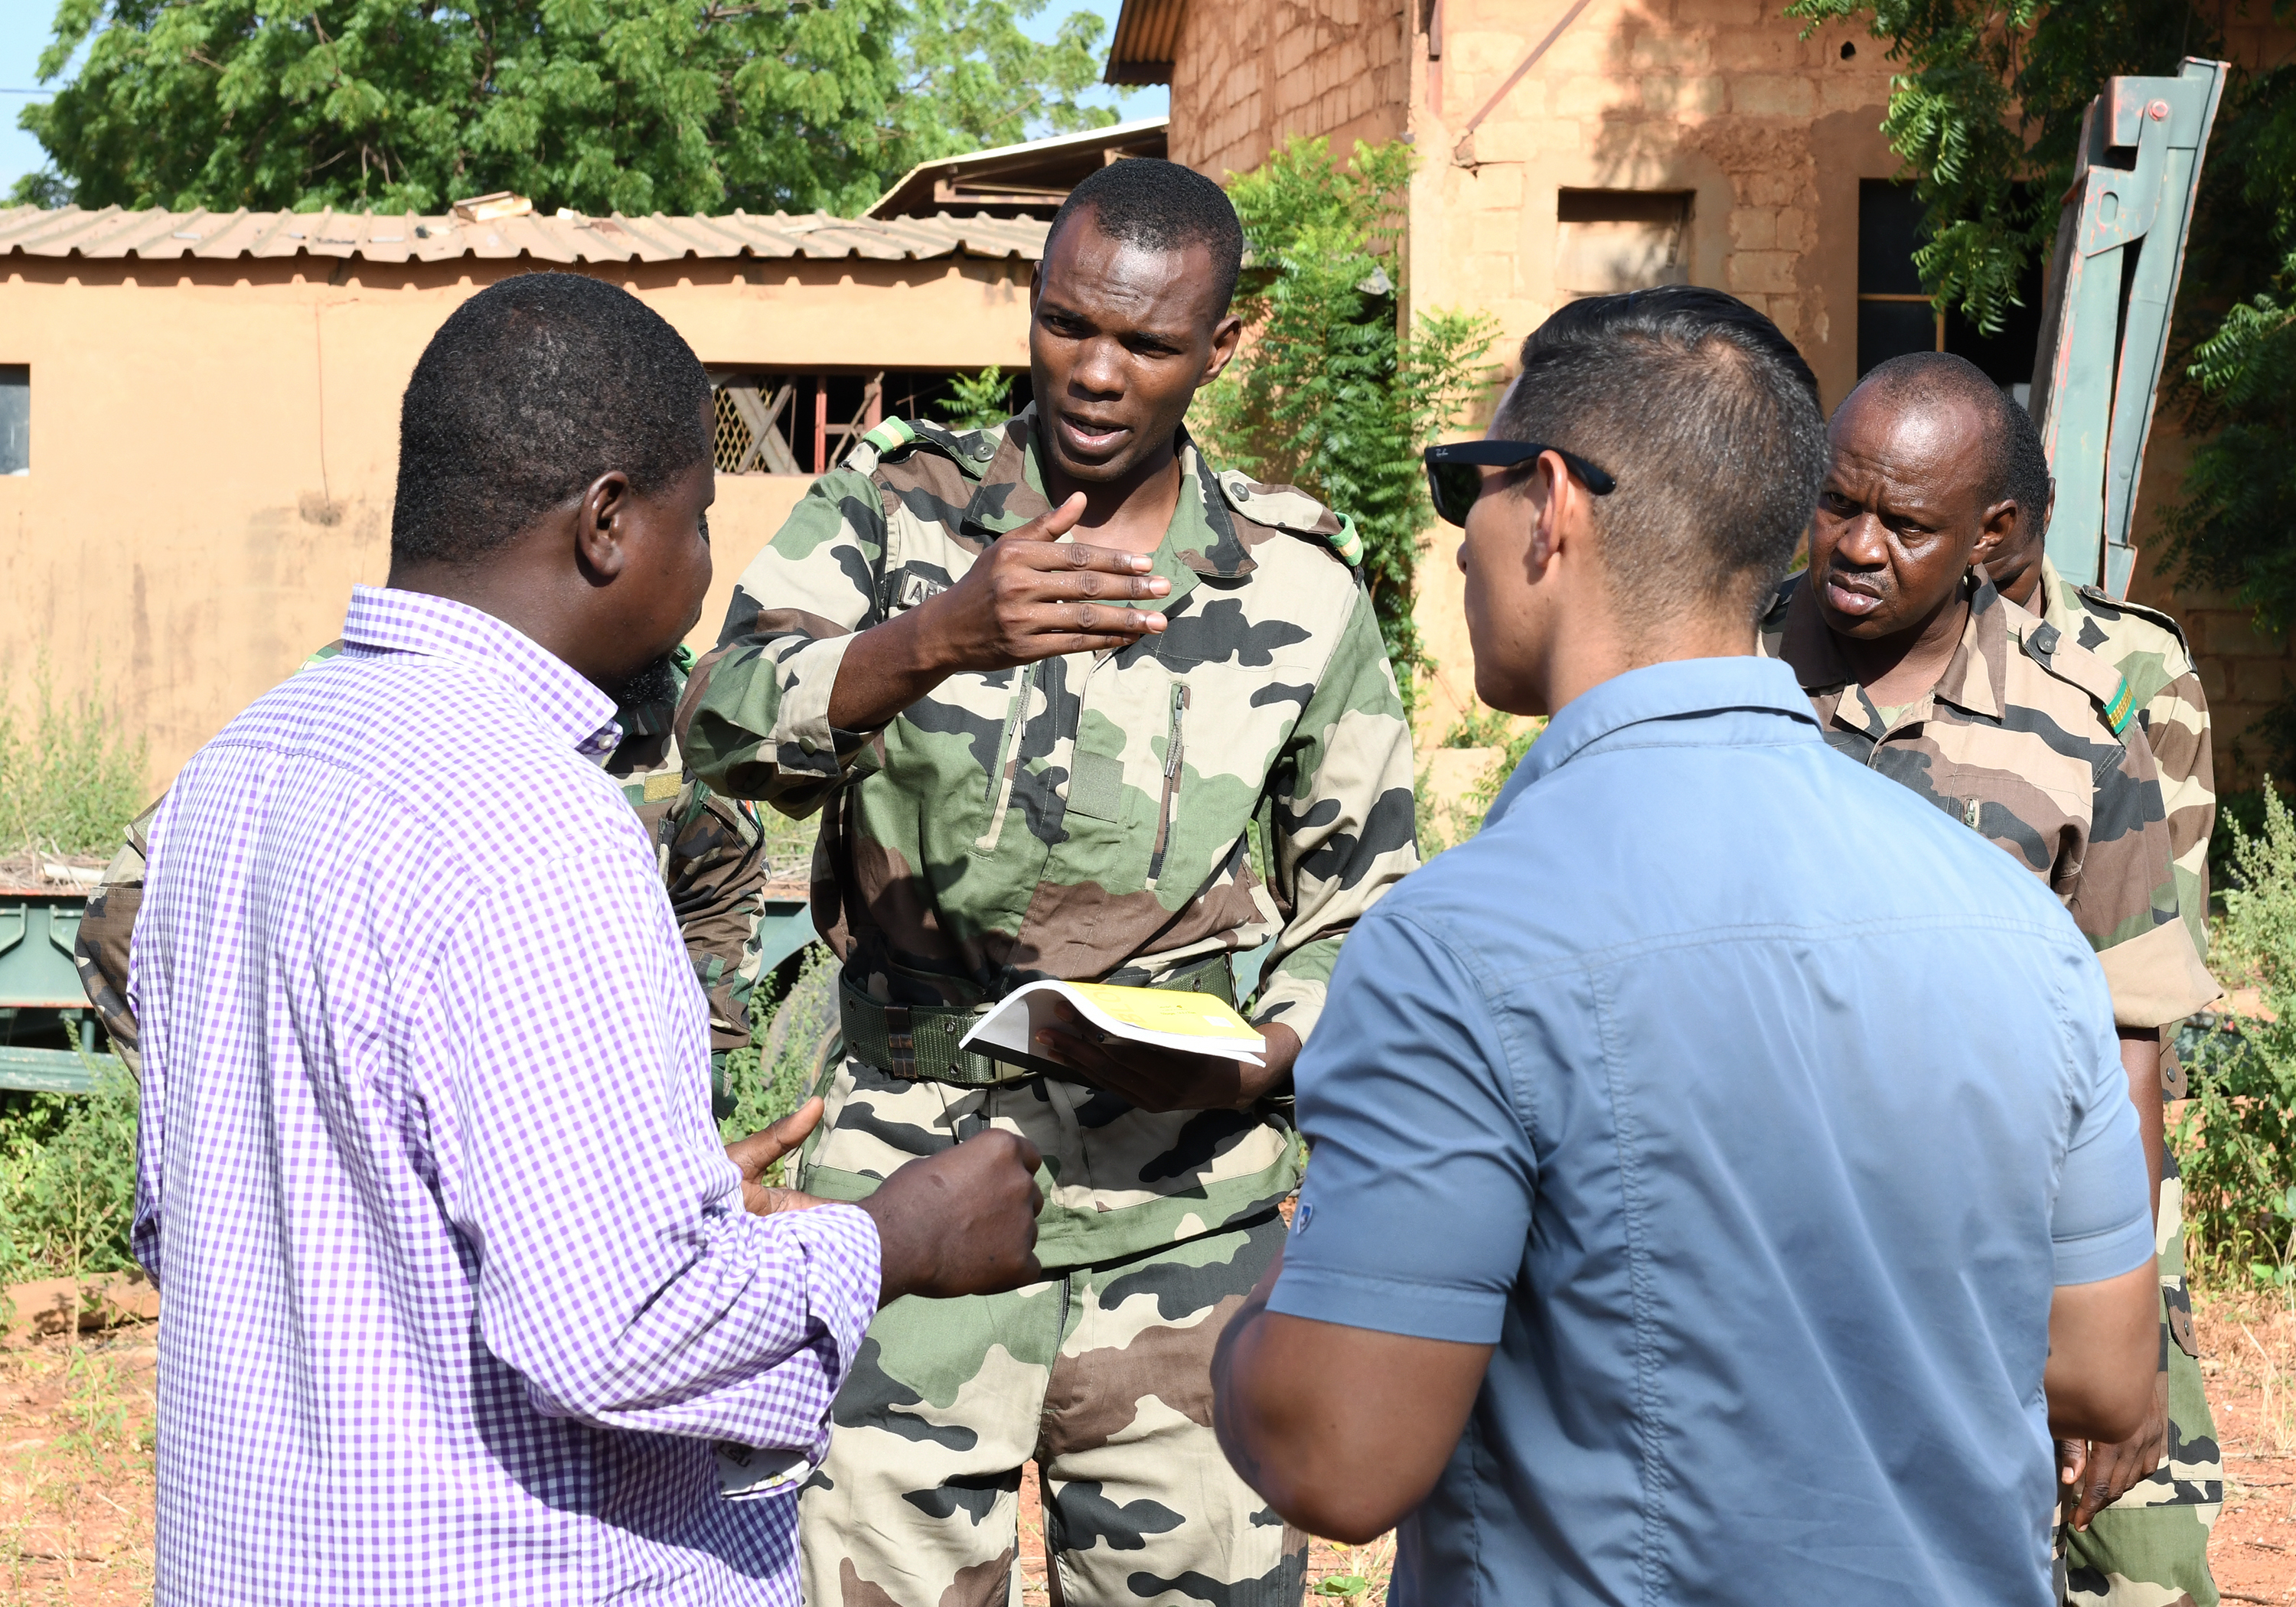 Forces Armées Nigeriennes (Nigerien Armed Forces) 2nd Lt. Amadou Belloh Abdoulaye, Genie Unit combat engineer, speaks to instructors during an Improvised Explosive Device Awareness Course in Niamey, Niger, Oct. 11, 2019. During the week-long course, the 768th Expeditionary Air Base Squadron Explosive Ordnance Disposal team and Security Forces Air Advisors taught FAN personnel valuable skills for the deployed environment such as how to locate and react to an IED, how to set up a cordon and the procedures to clear the area. (U.S. Air Force photo by Staff Sgt. Alex Fox Echols III)